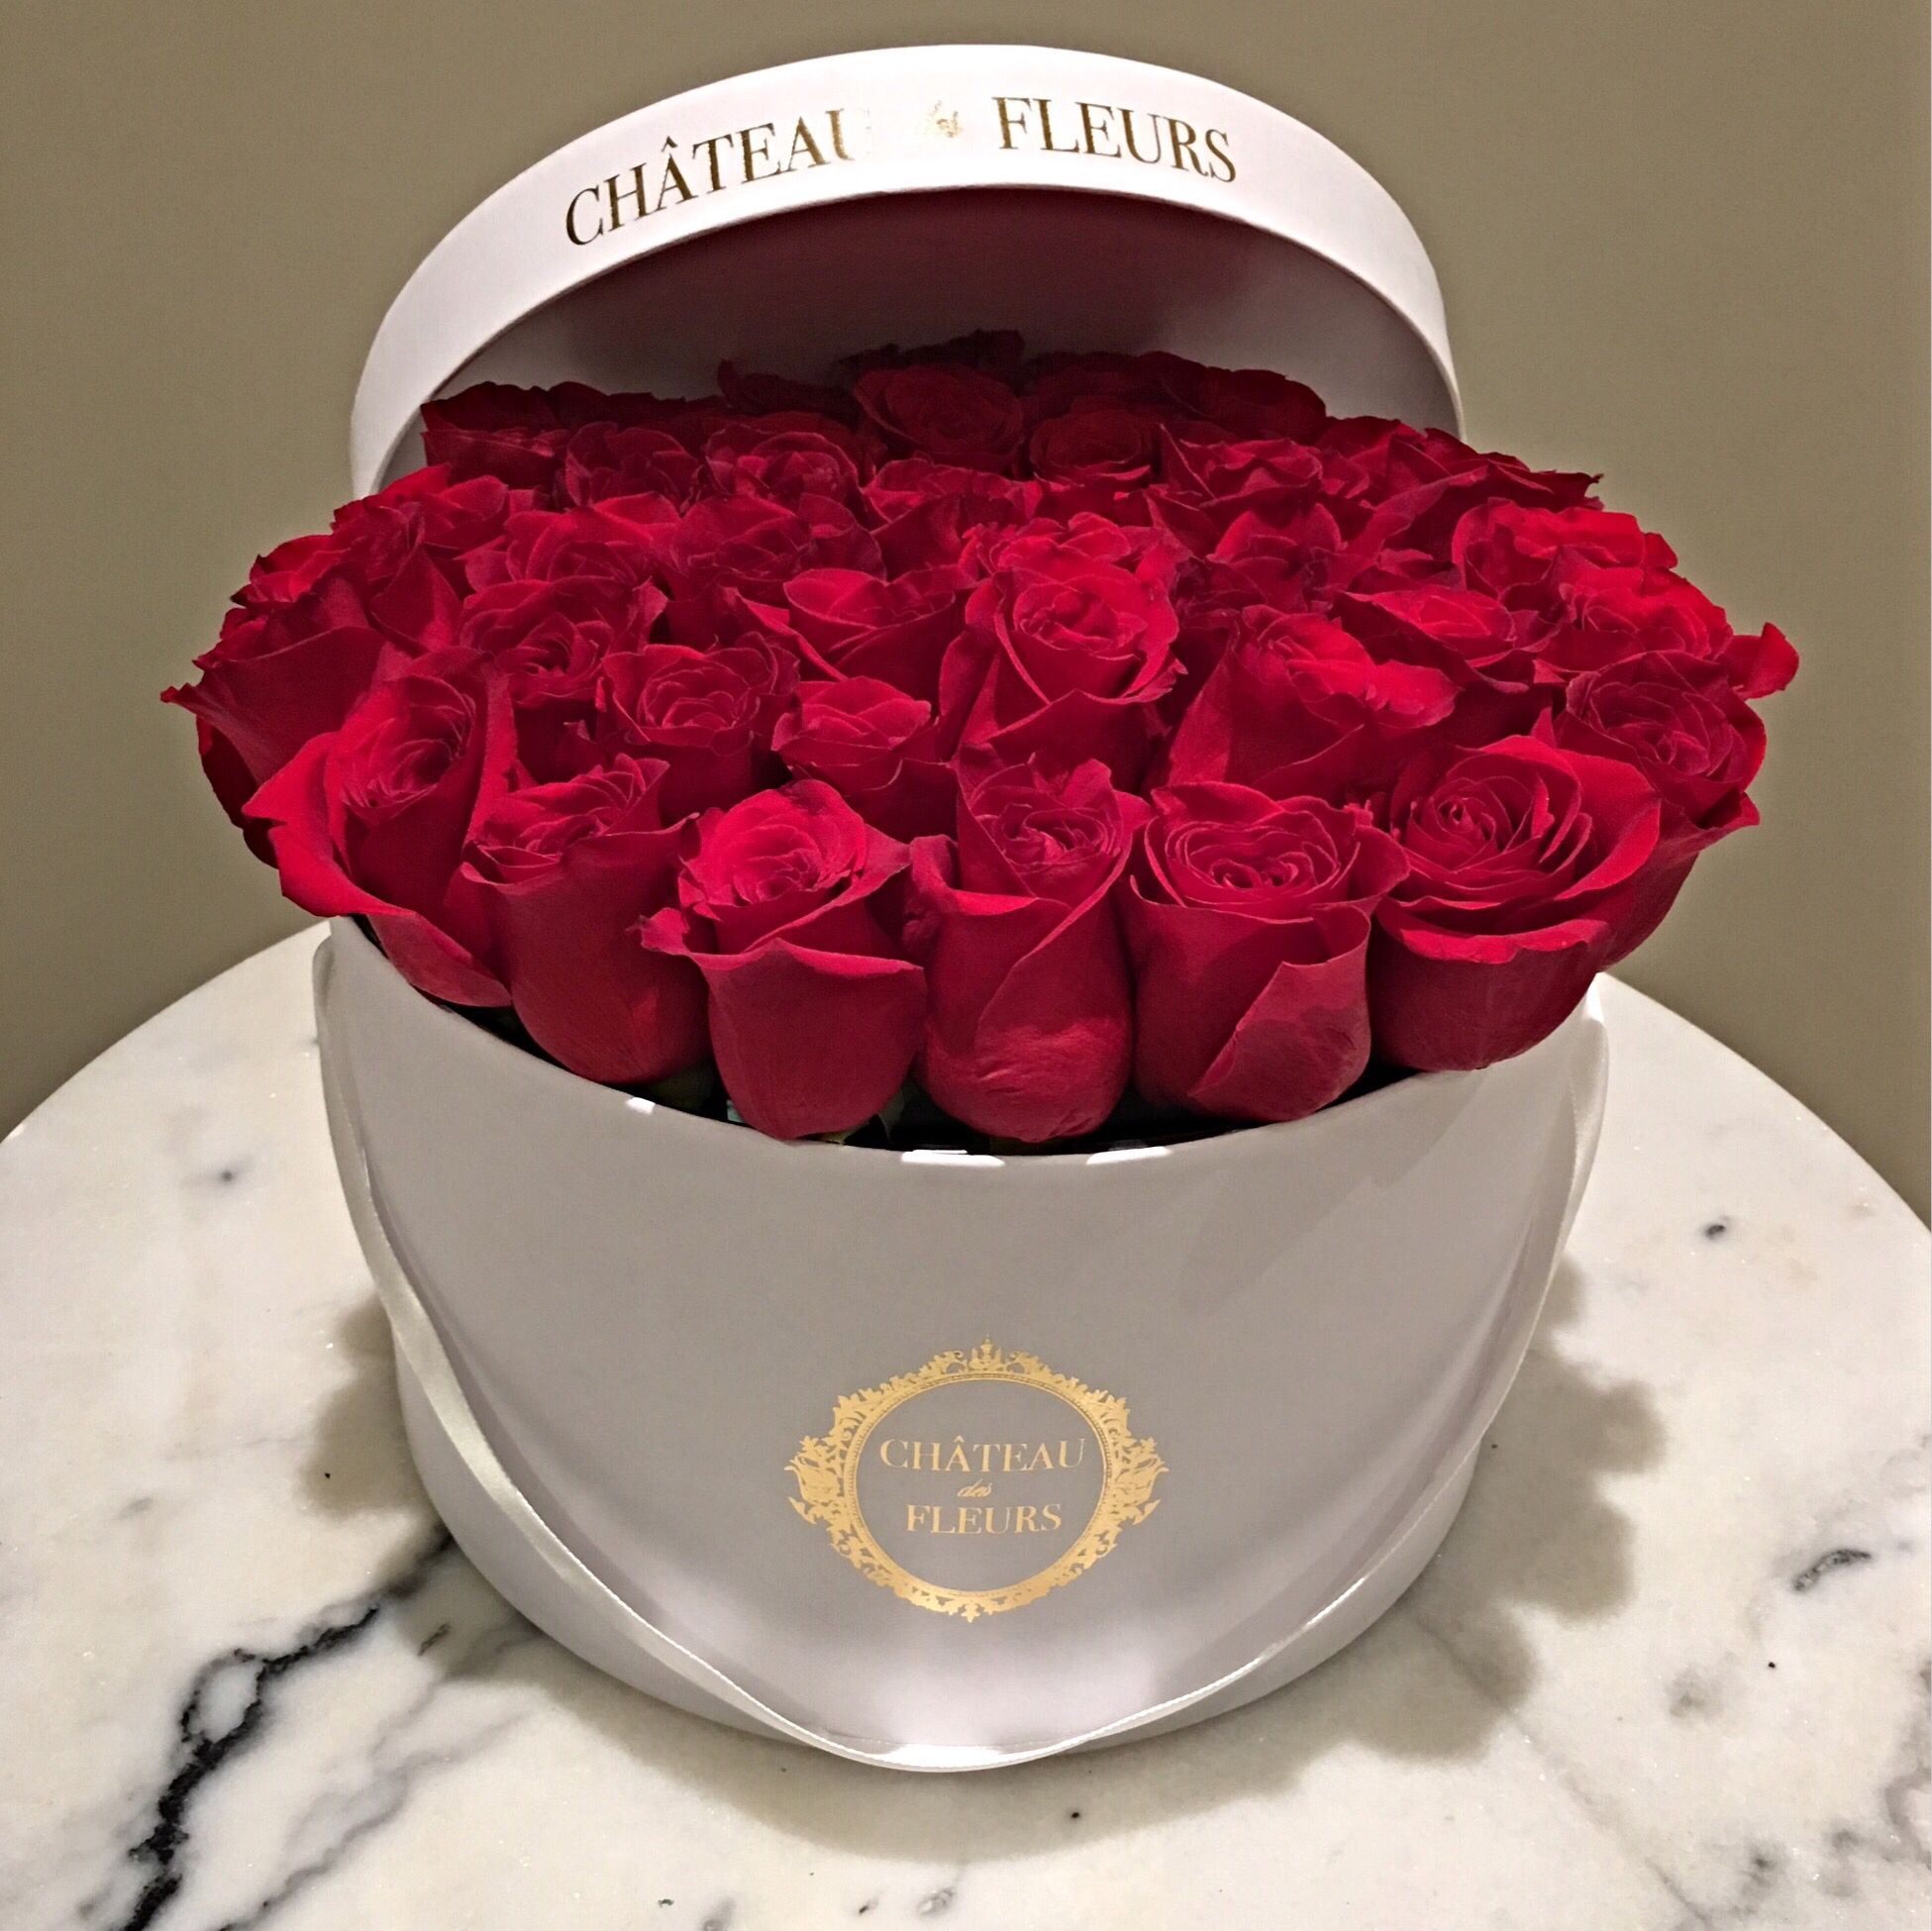 Signature Round Box ️ Chateau des Fleurs Rose Collection Flowers in a box